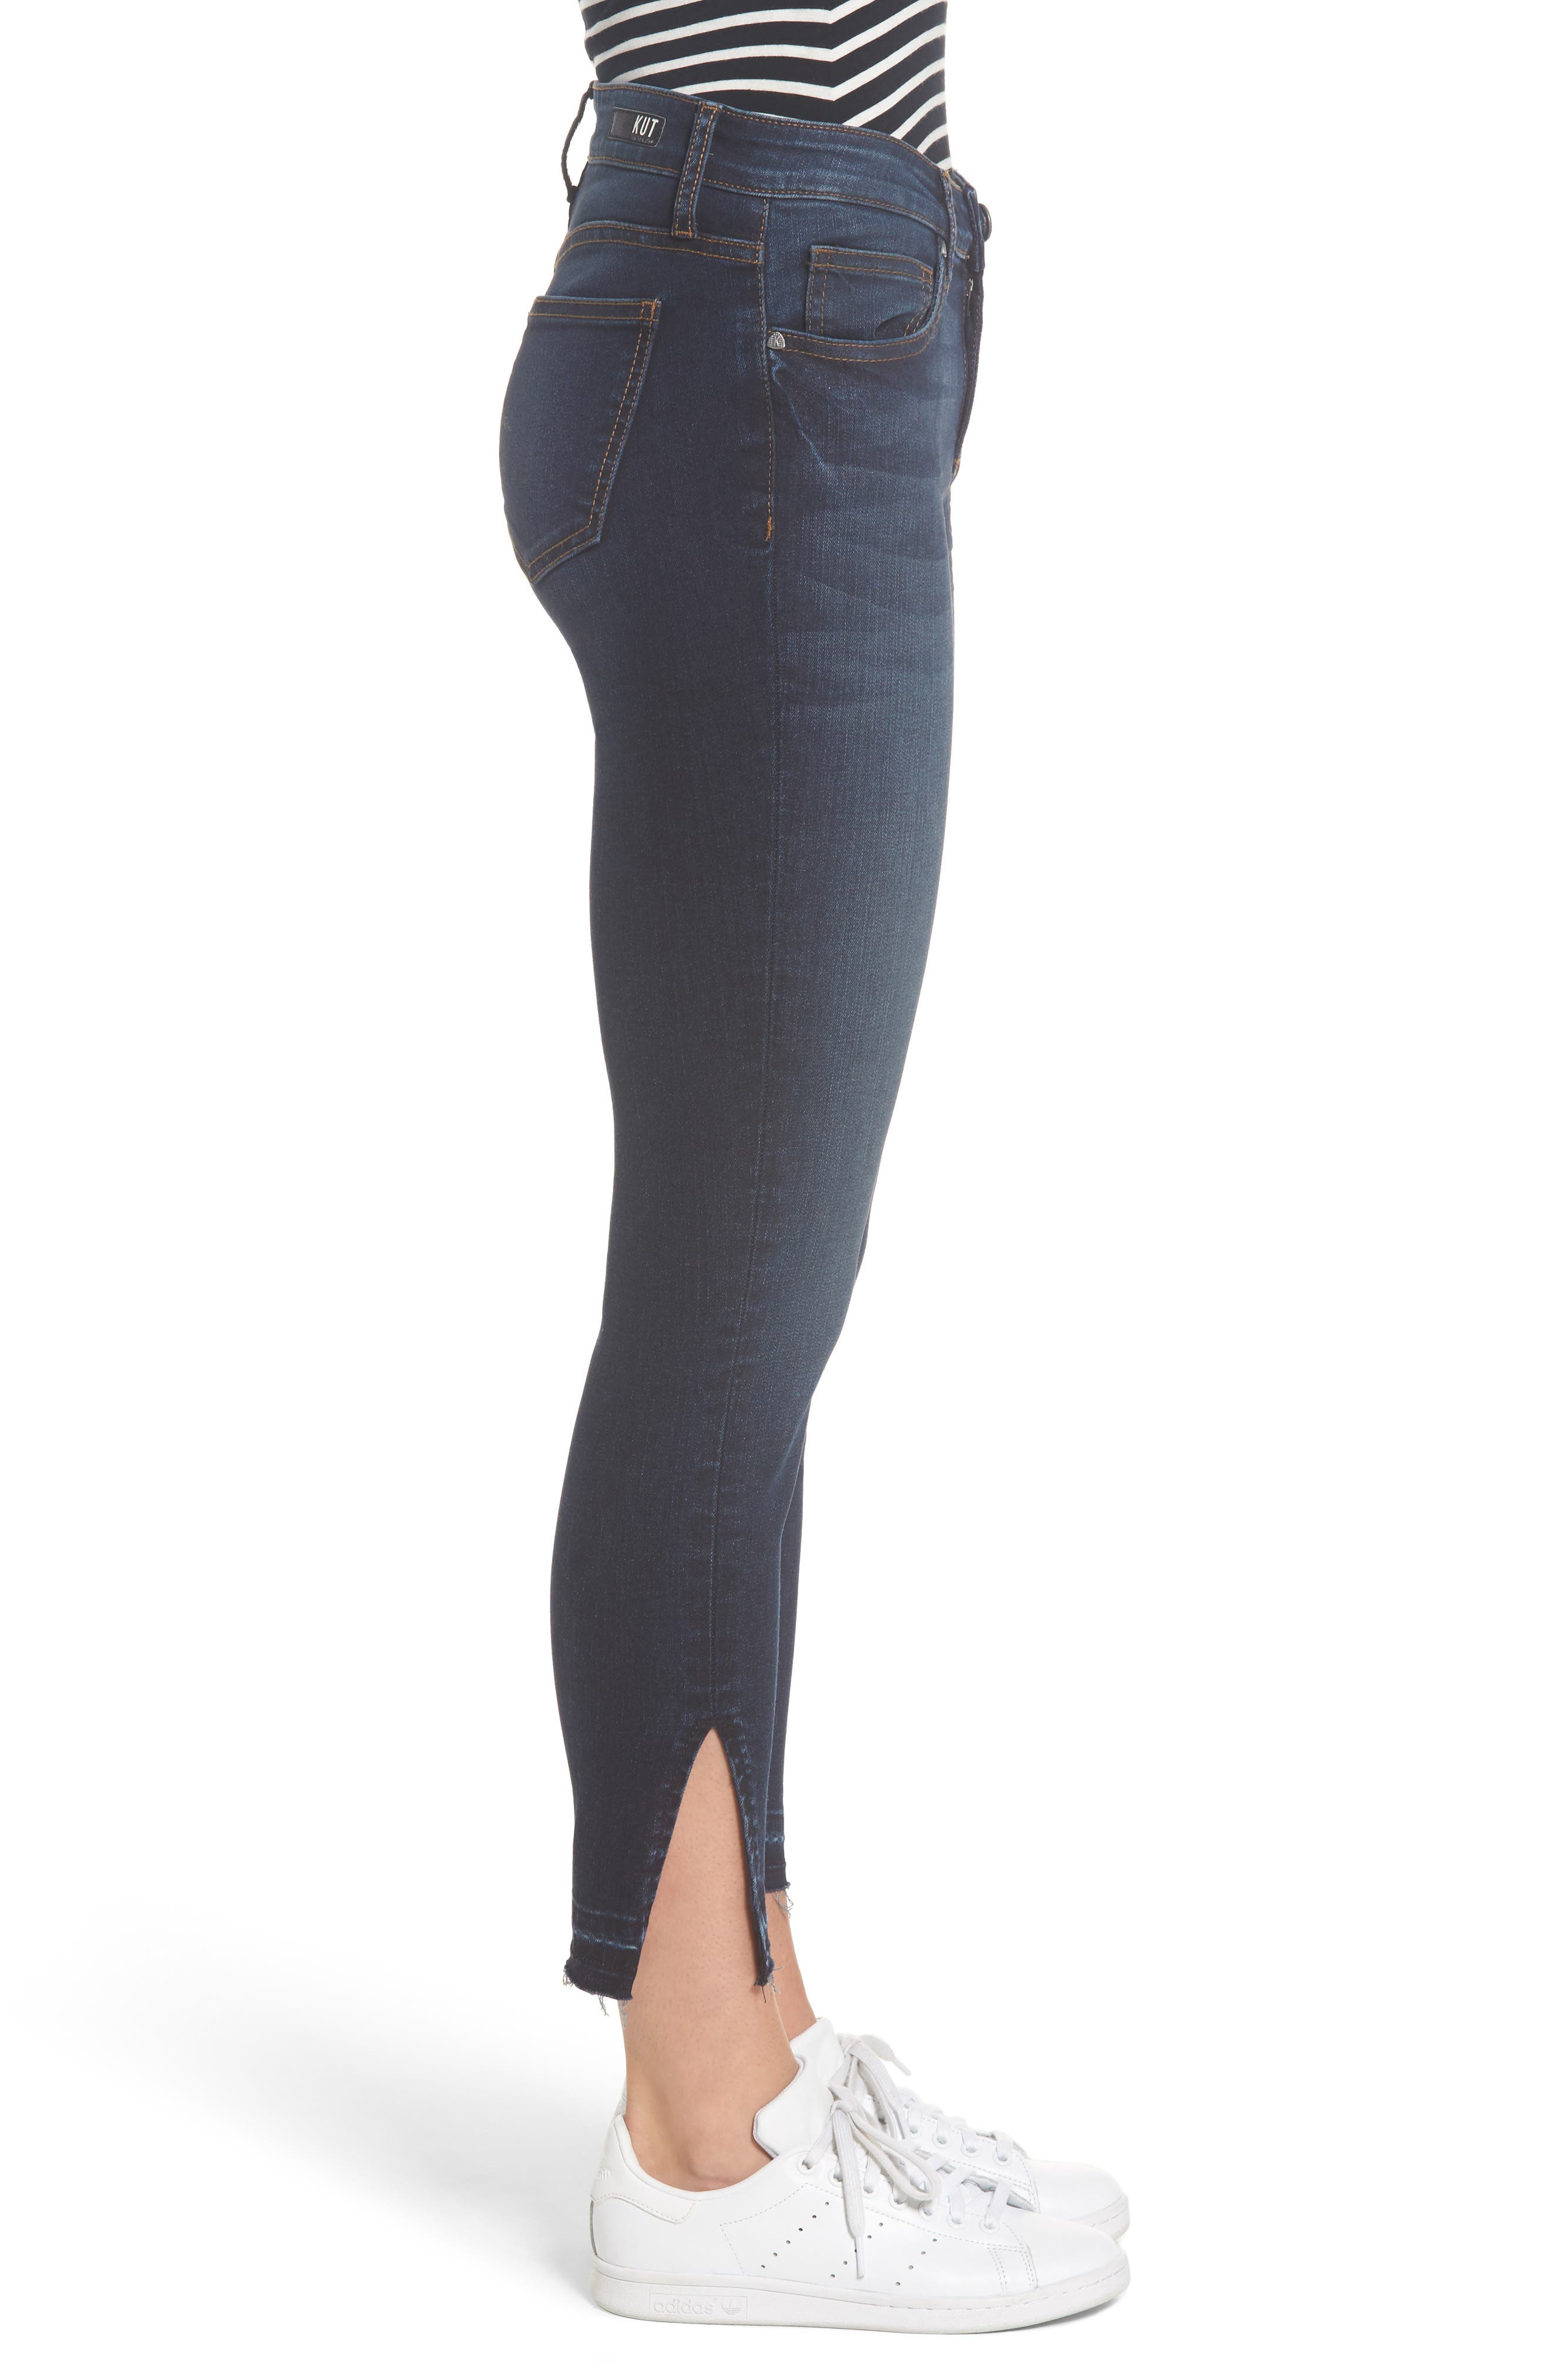 Connie Release Hem Ankle Skinny Jeans,                             Alternate thumbnail 3, color,                             431